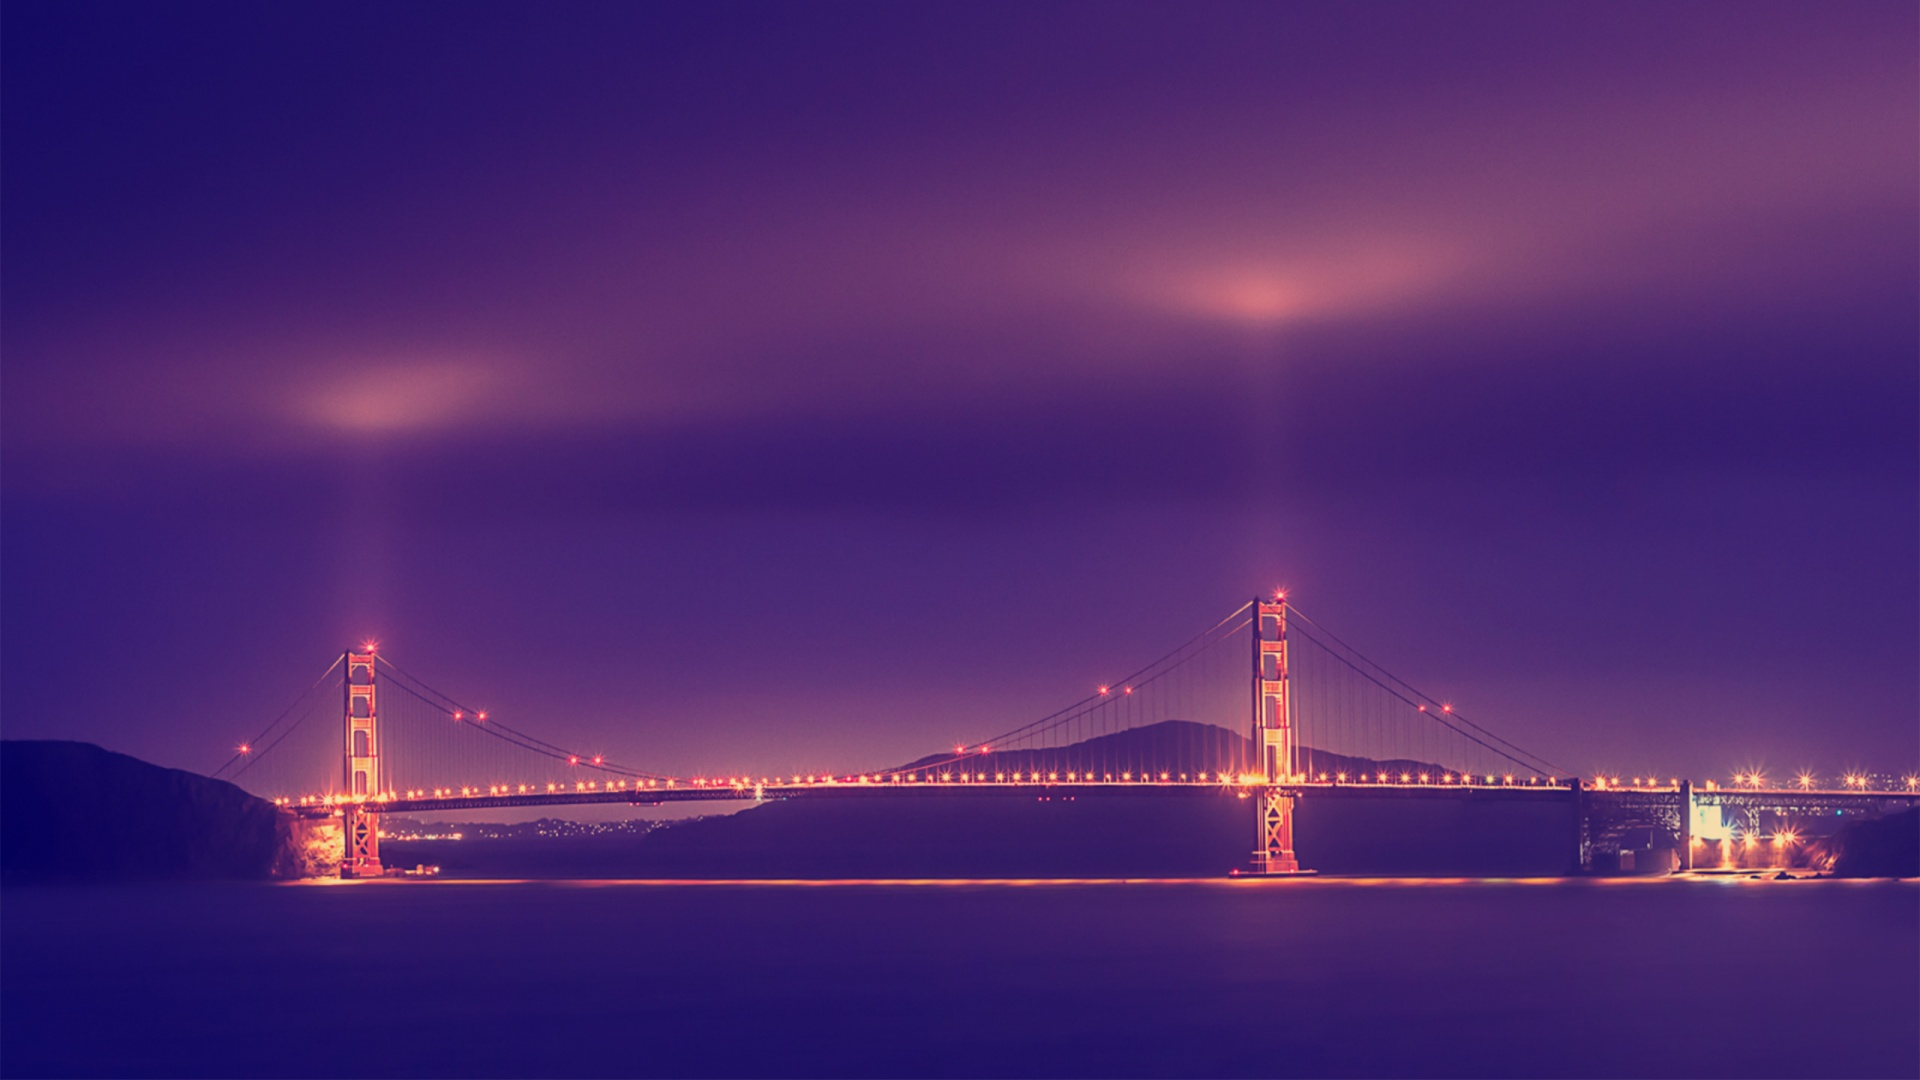 San Francisco Golden Gate Bridge Wallpapers | HD Wallpapers 777